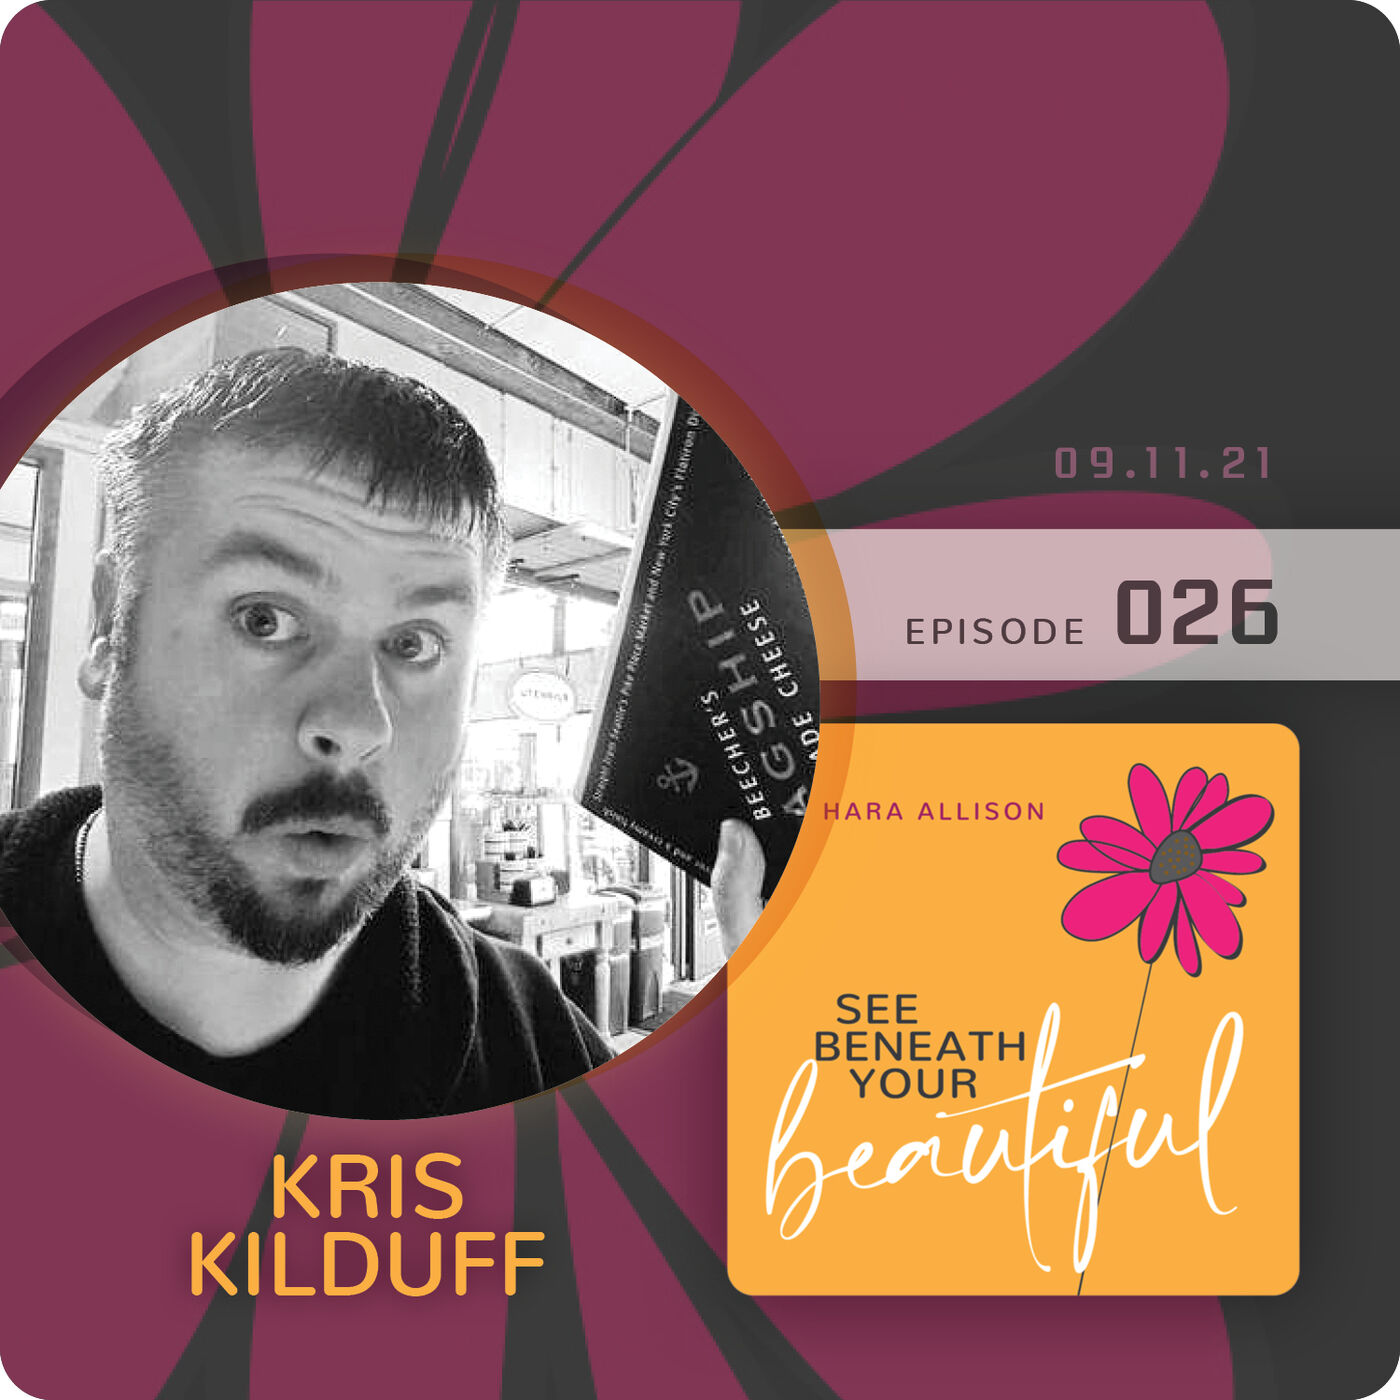 026. Kris Kilduff discusses marketing, food, pop culture and vintage toys; how his brain works; having an absent mom; being an artist, an extreme extrovert and an avid reader; and about how Mutley the dog runs his life